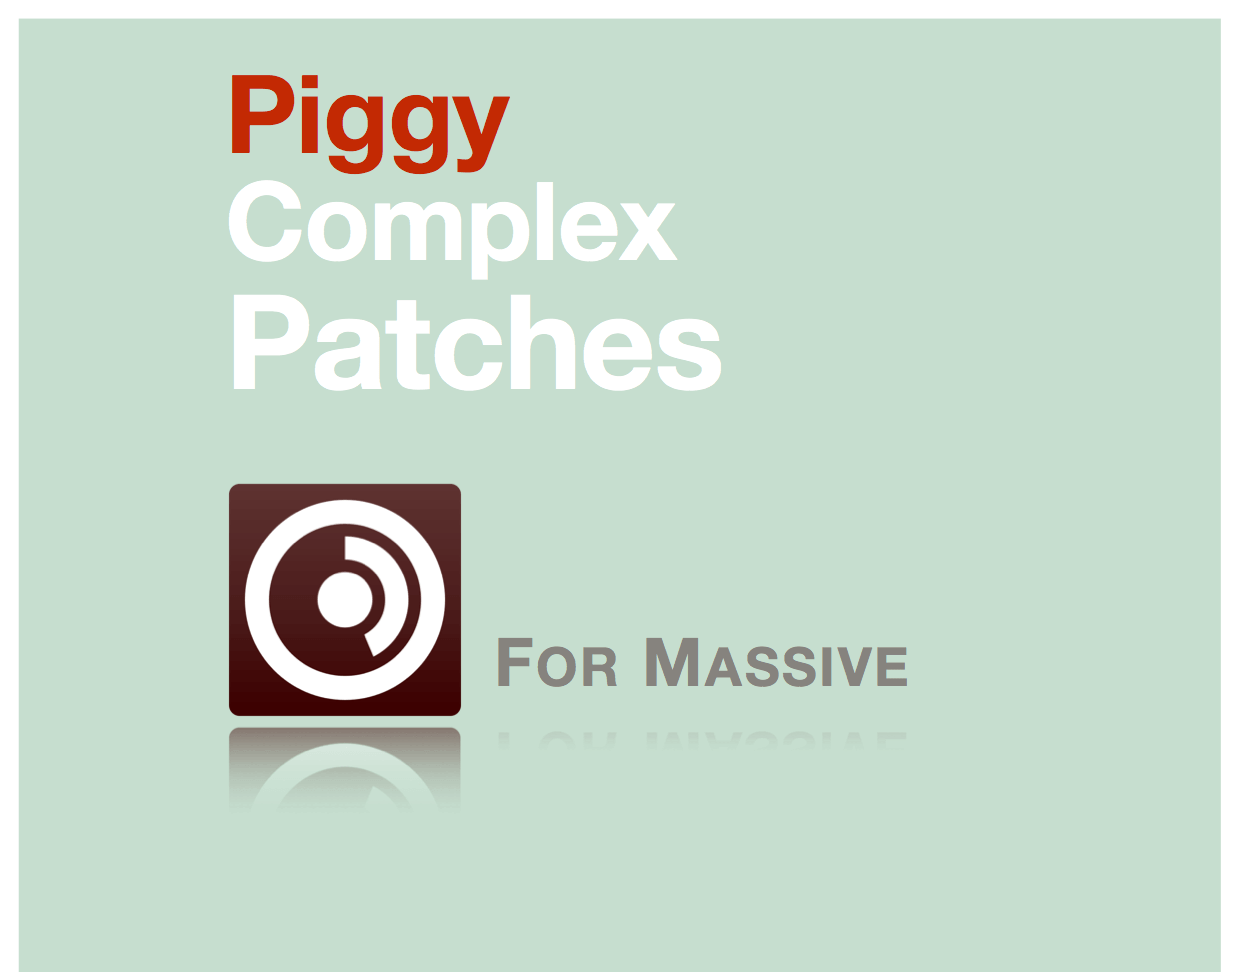 Piggy Complex Patches